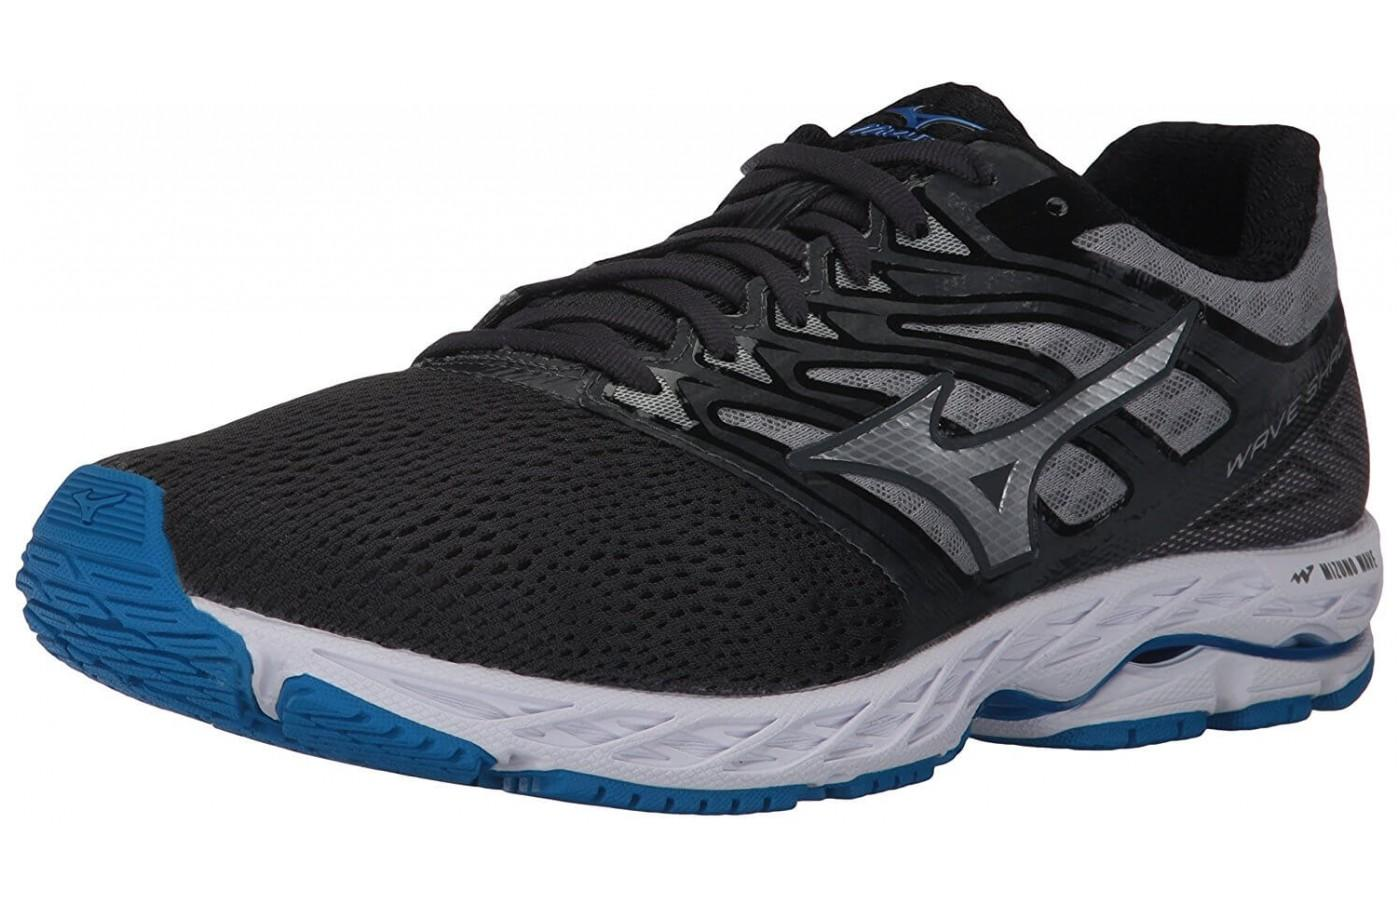 The Mizuno Wave Shadow features an 8mm drop